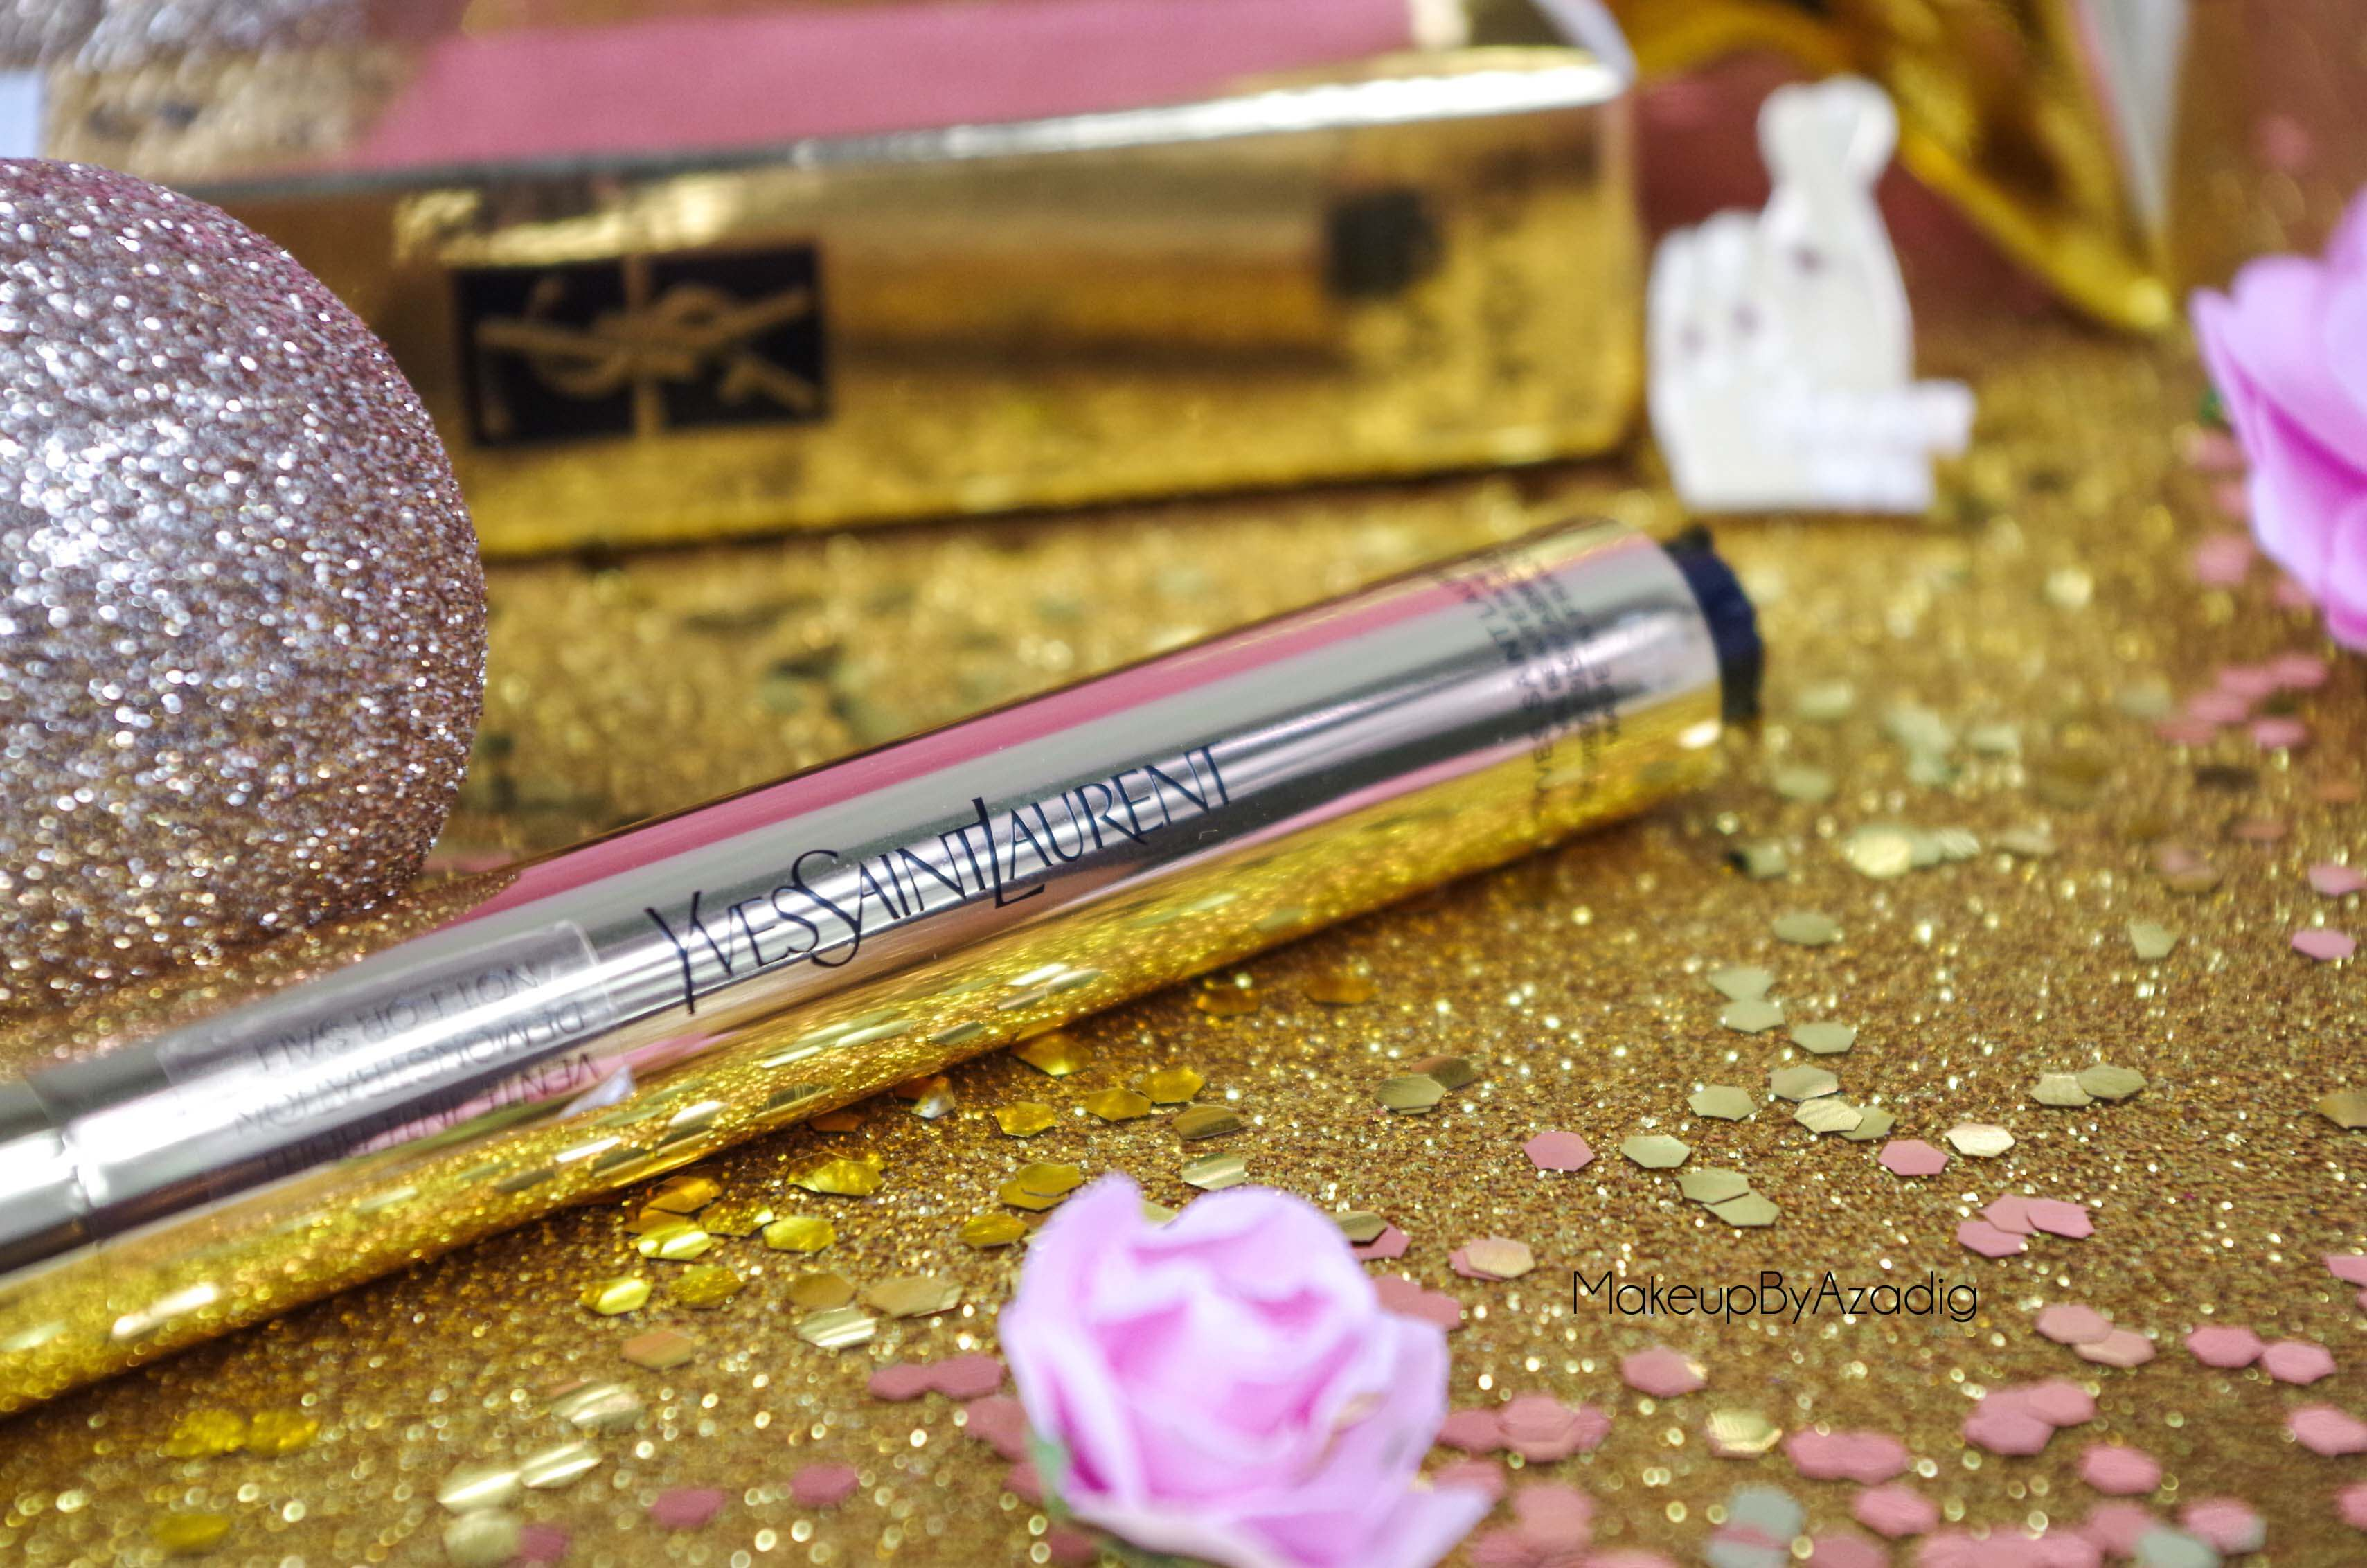 highlighter-stylo-touche-eclat-radiant-touch-enlumineur-yves-saint-laurent-ysl-revue-review-avis-prix-lucette-makeupbyazadig-nouvelle-collection